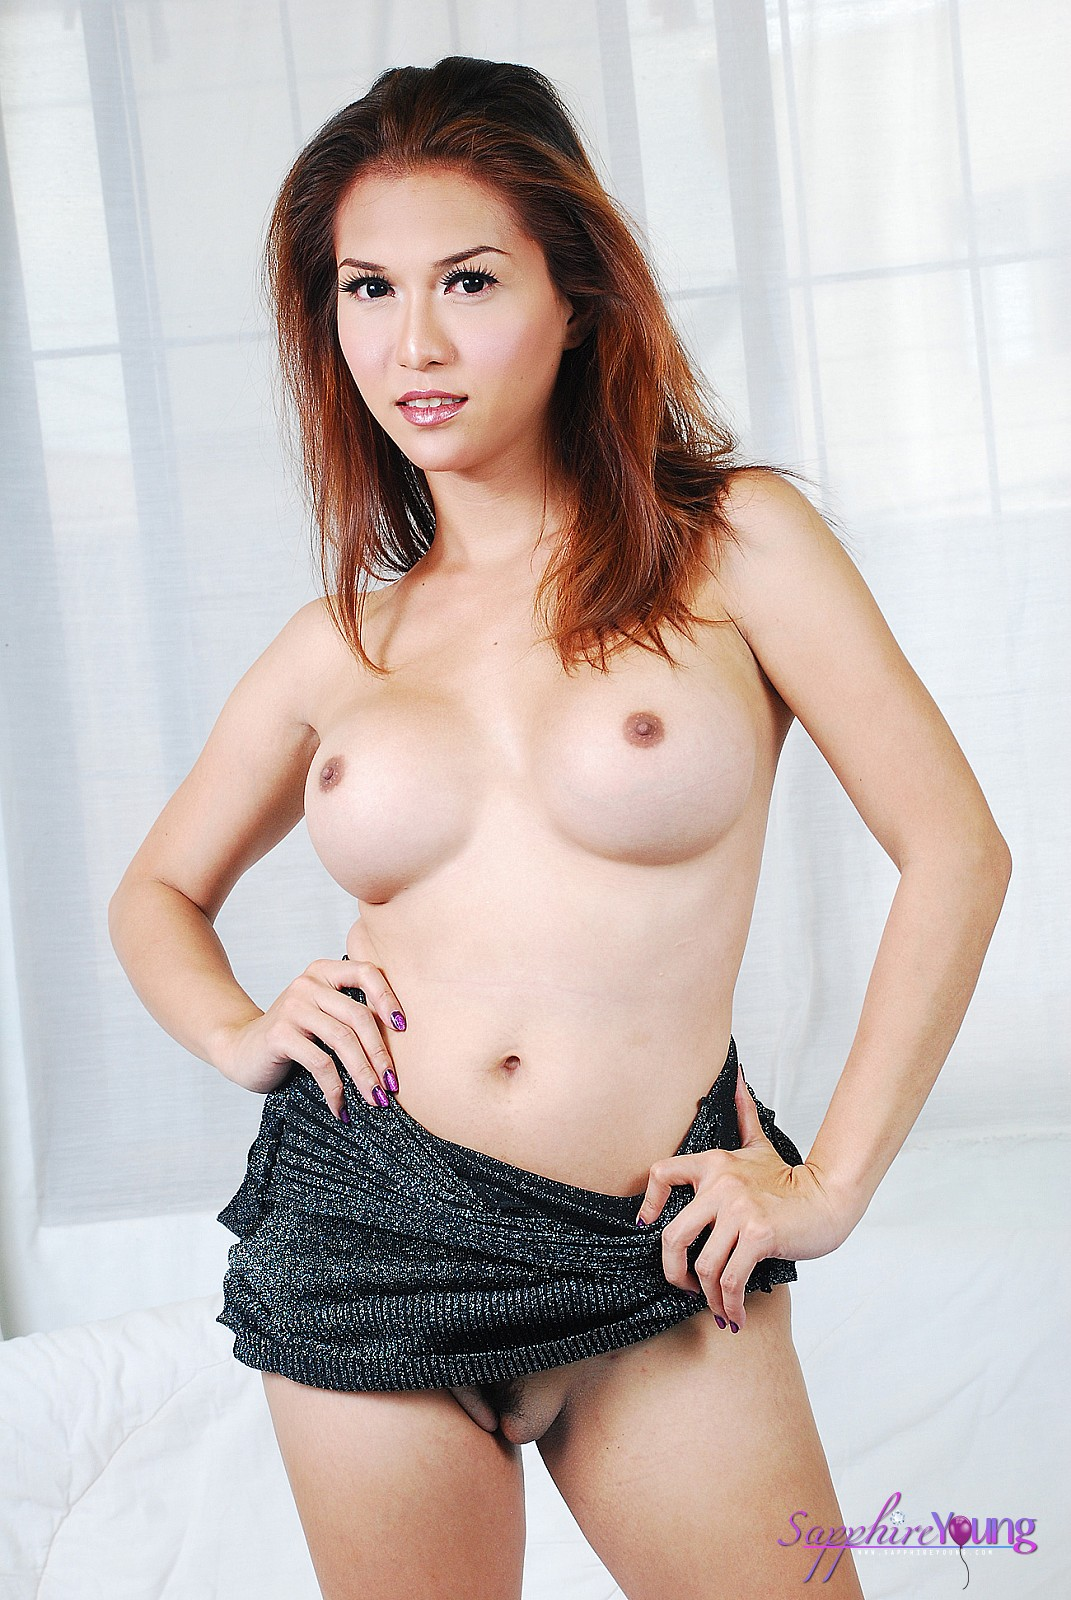 sapphire young com ladyboy shemale shinydress dressphoto nude gallery